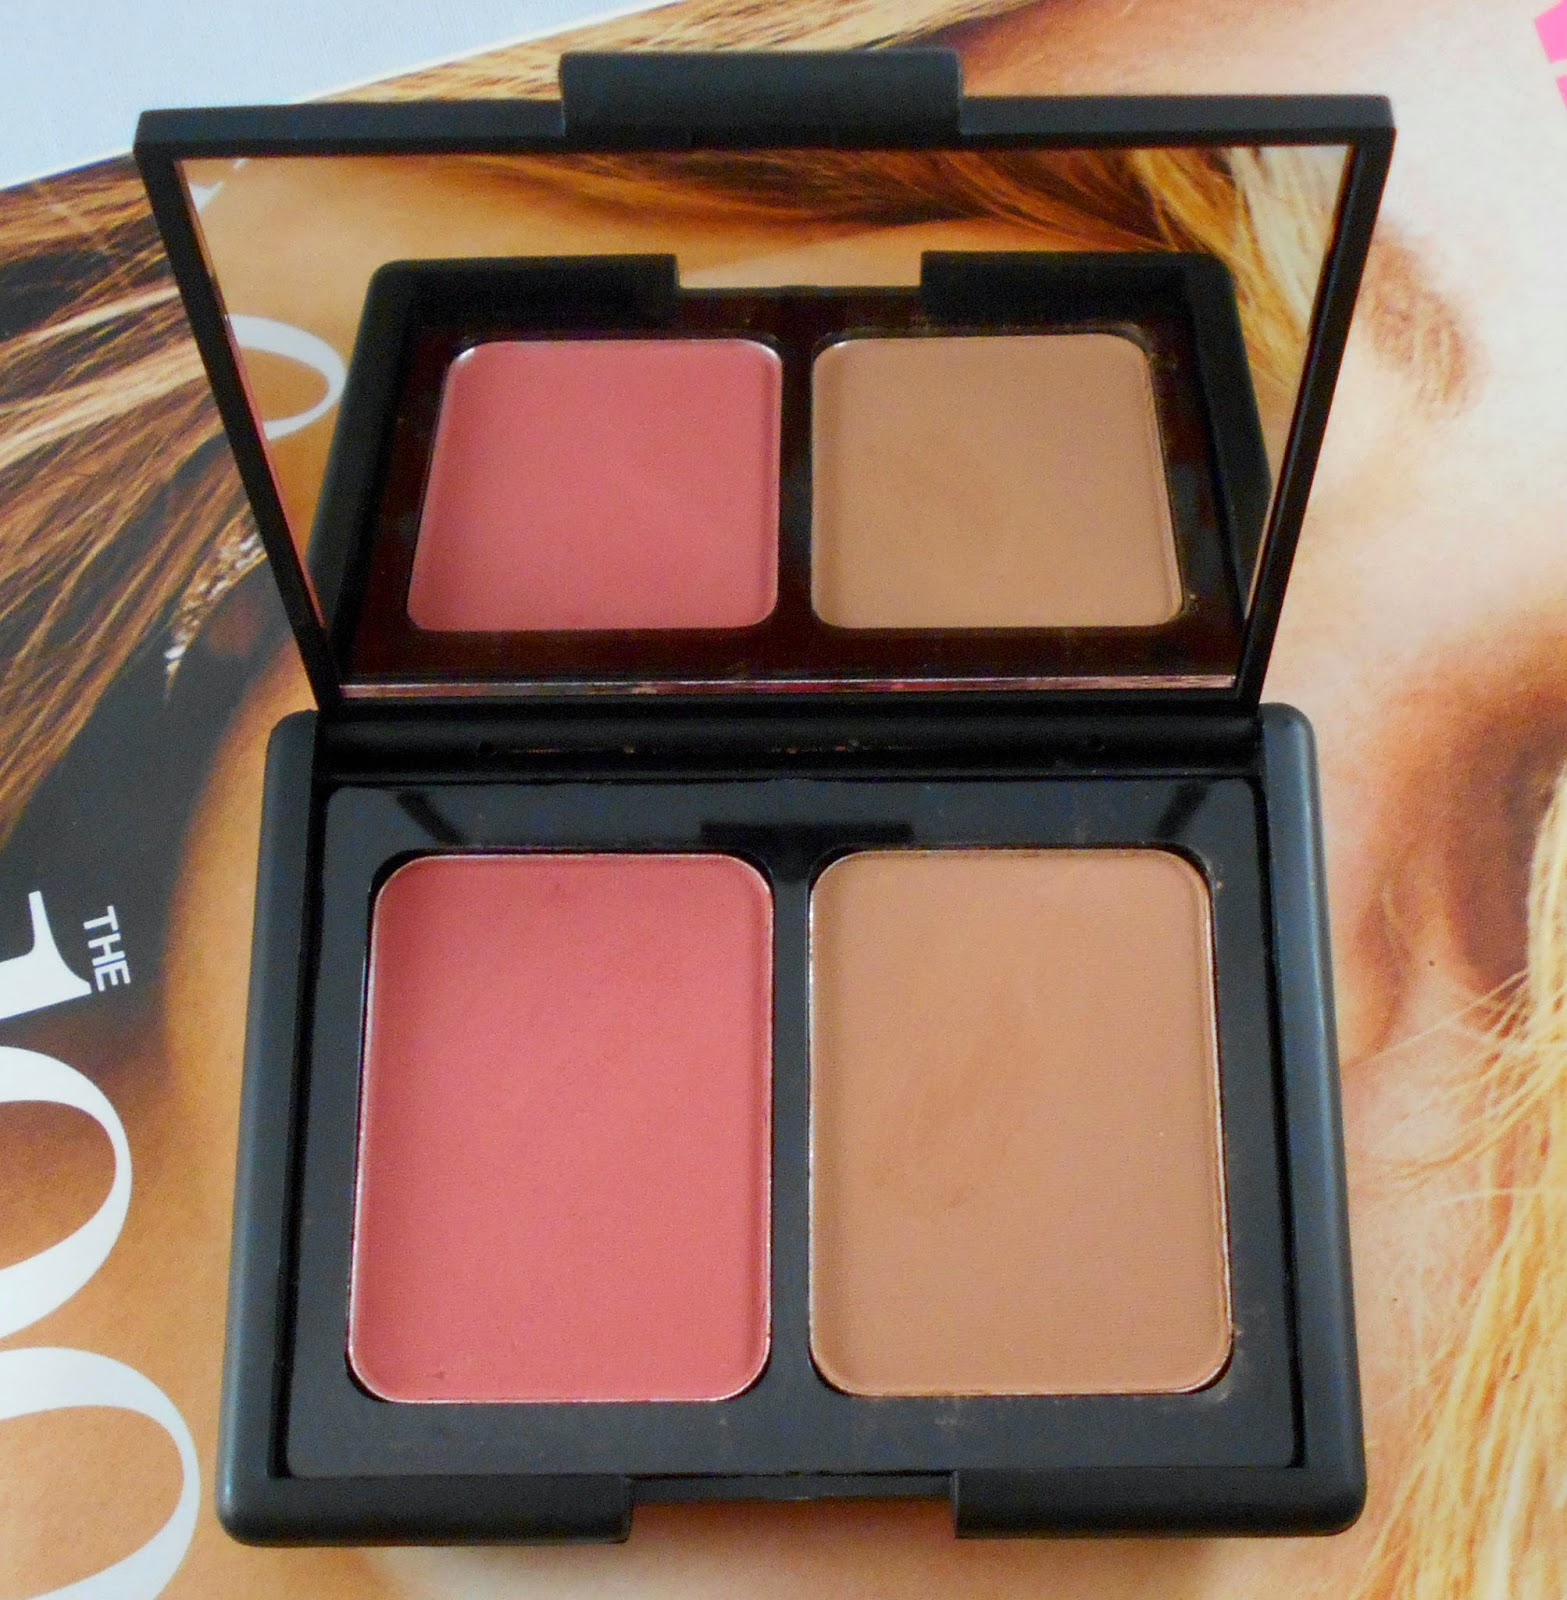 E.L.F Contouring Blush & Bronzing Powder in Fiji